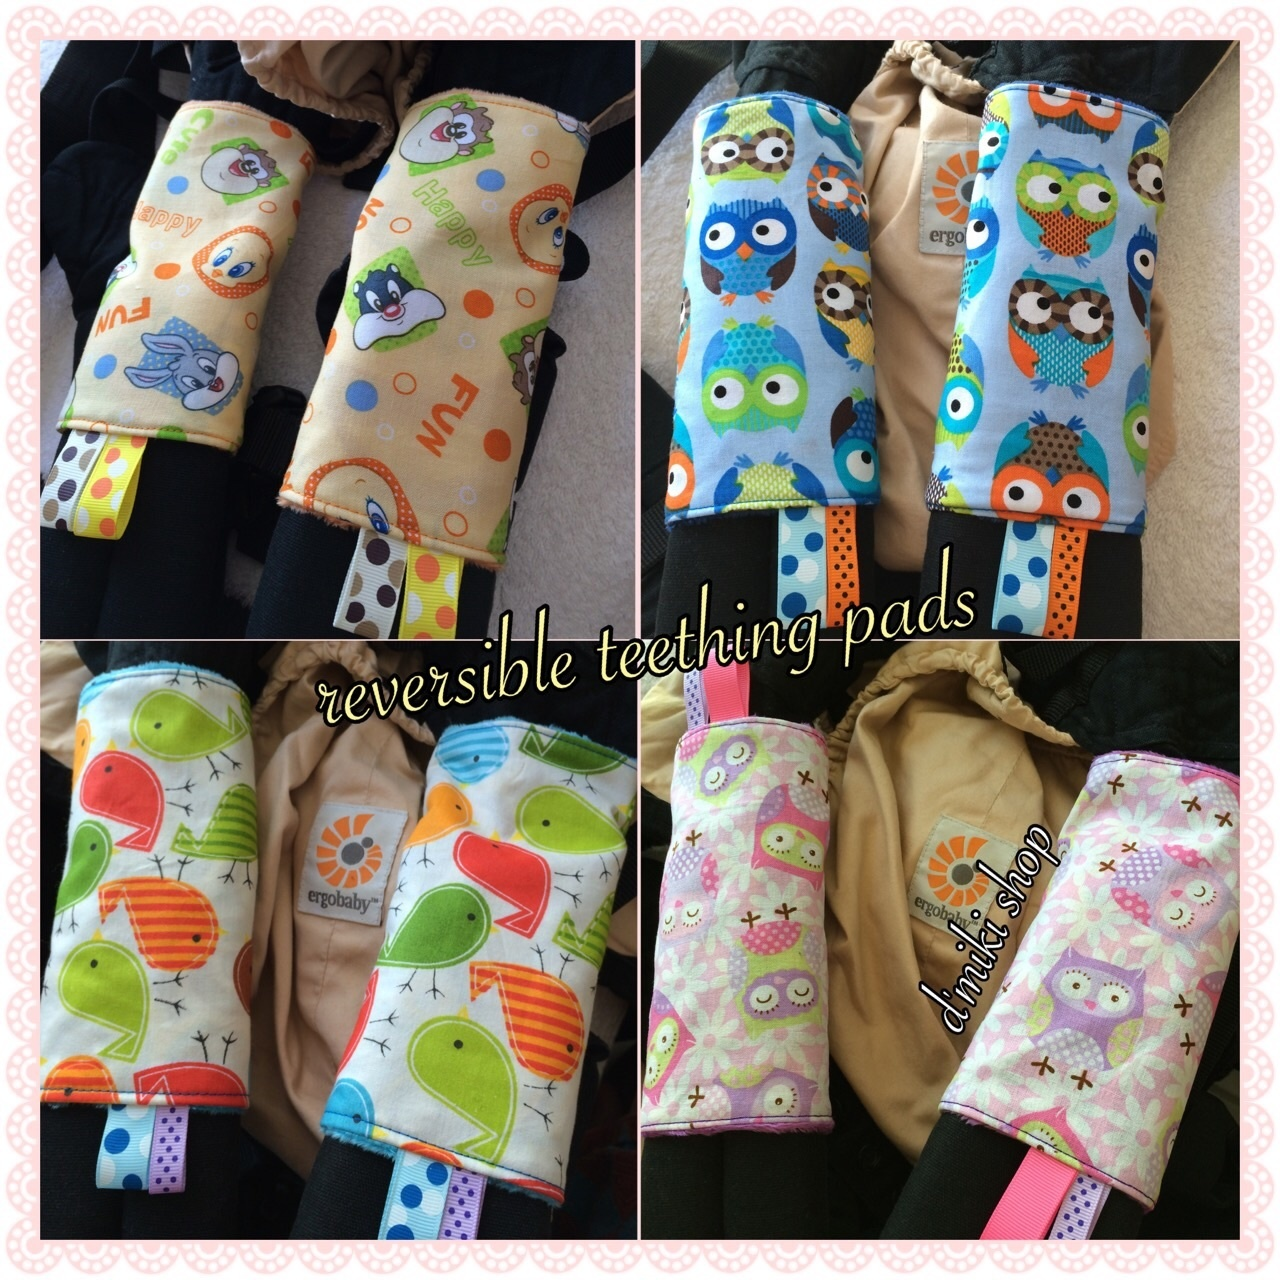 Baby crib for sale singapore - Dmiki Handmade Reversible Baby Carrier Teething Pads Teething Pad Drool Pads Tagged Baby Carrier